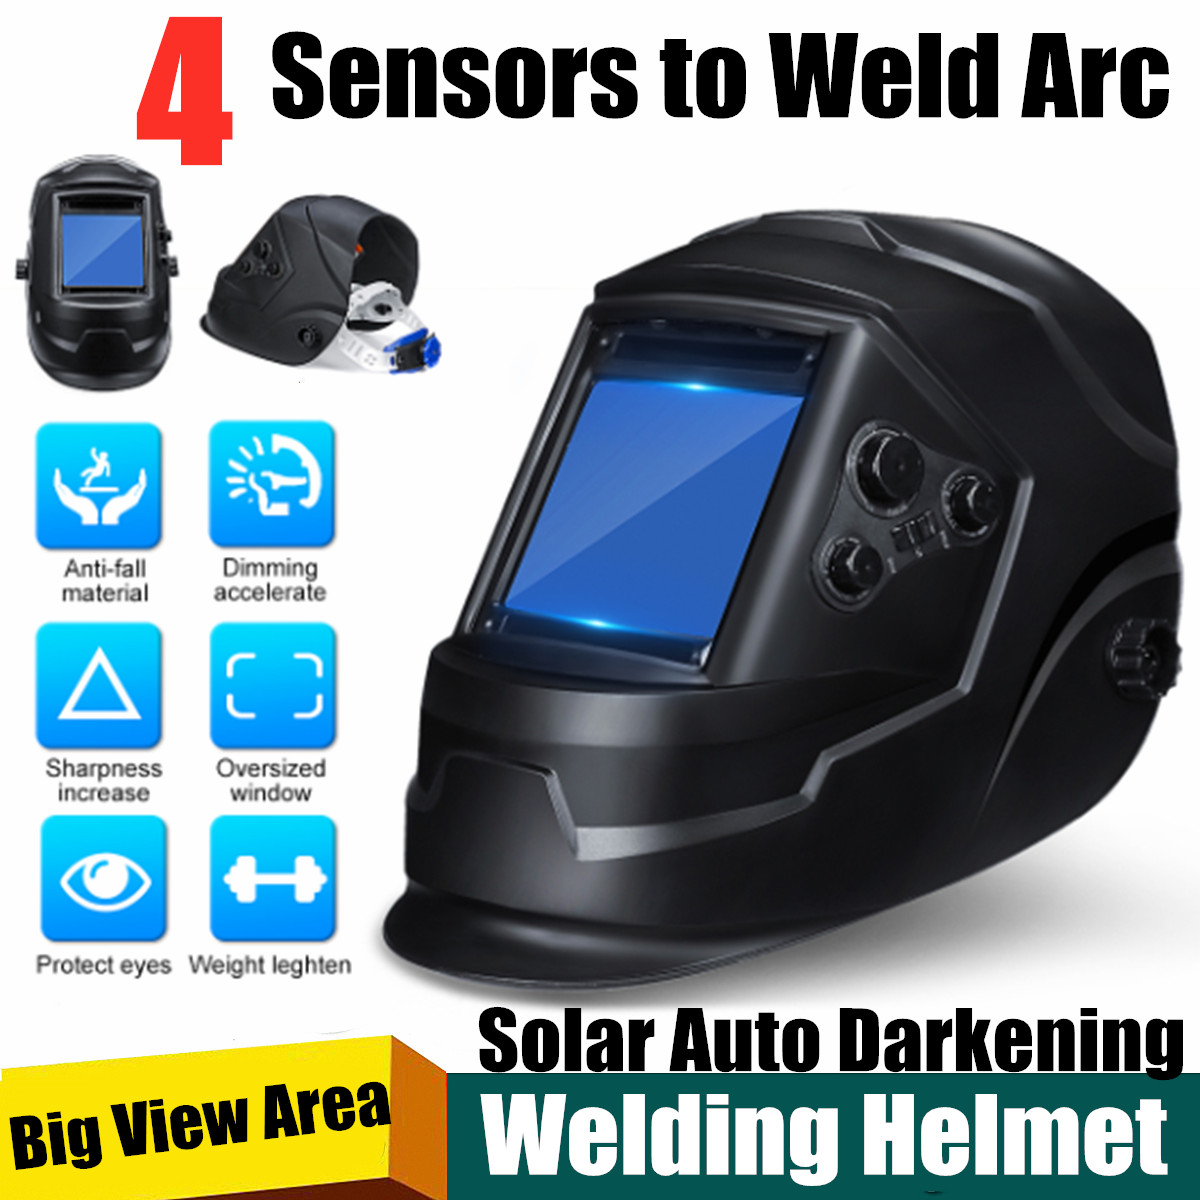 Solar Power Auto Darkening Welding Helmet Big View 4 Arc Sensor DIN5-DIN13 TIG MIG MMA Welding Mask/Helmet/Welder Cap/Lens/Face